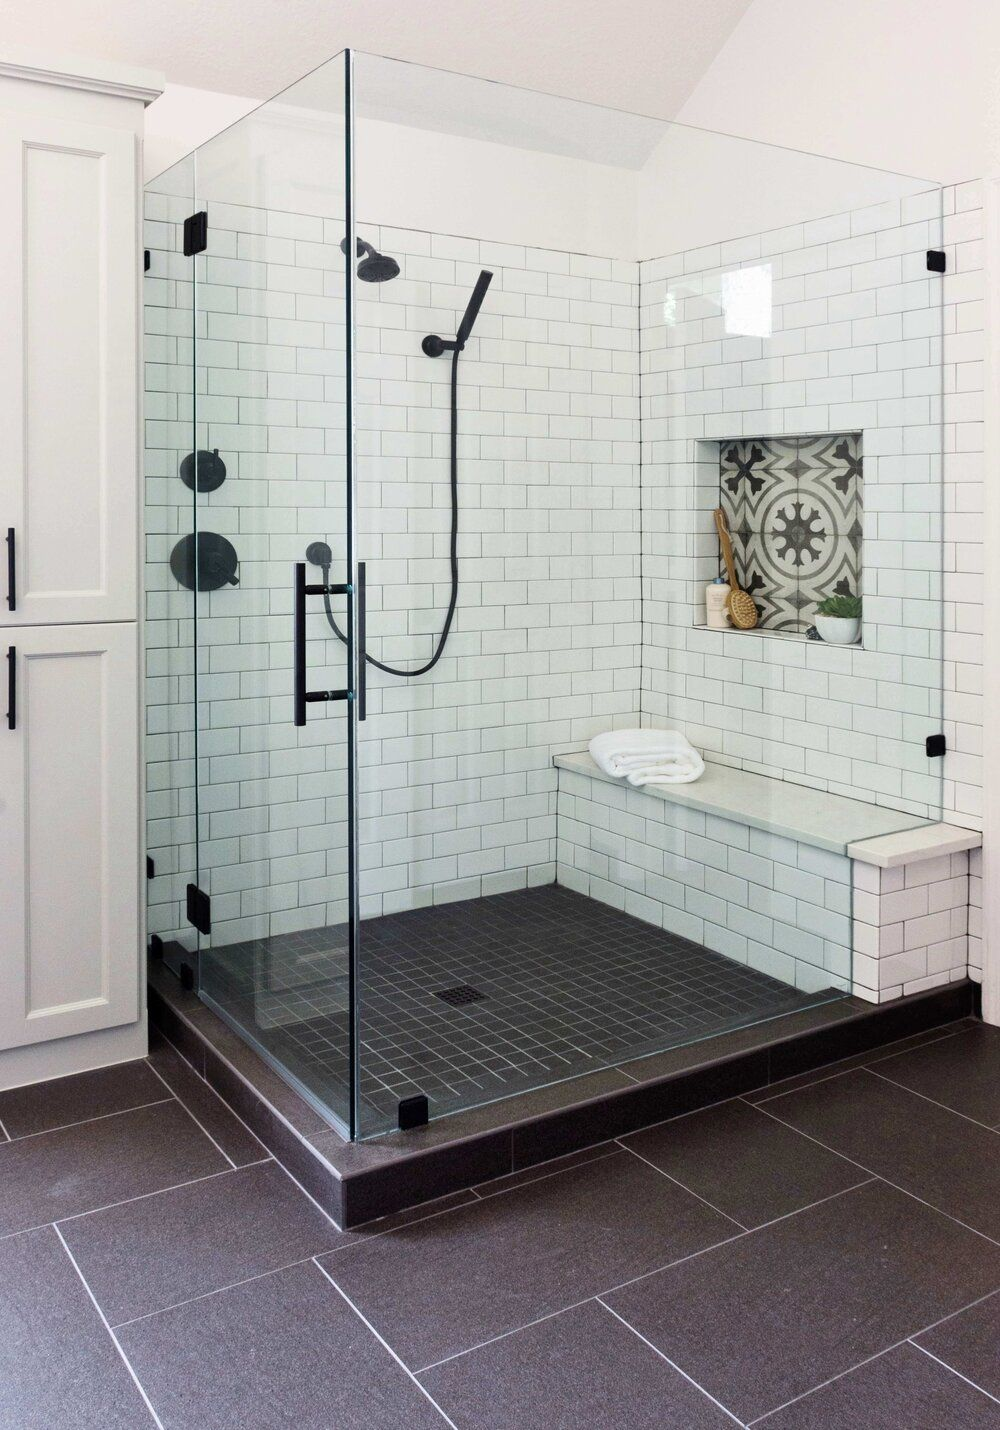 Bathroom Design Guide - How This Project Checklist Can Help Your Next Remodel — DESIGNED